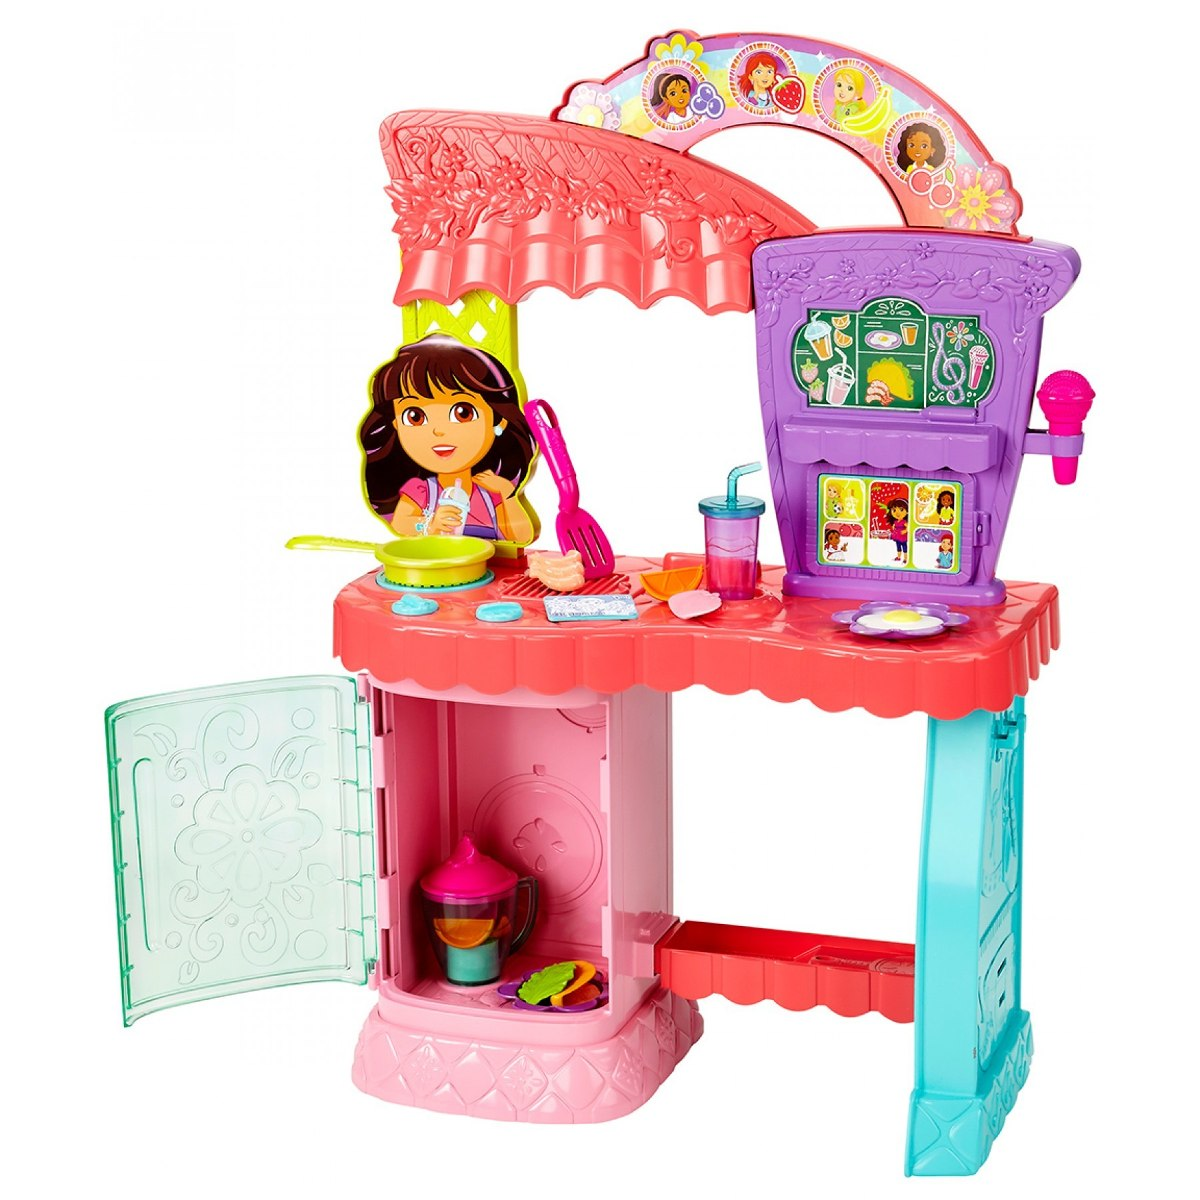 Cocina arcoiris de dora la exploradora 2 en 1 fisher price - Cocina dora la exploradora fisher price ...